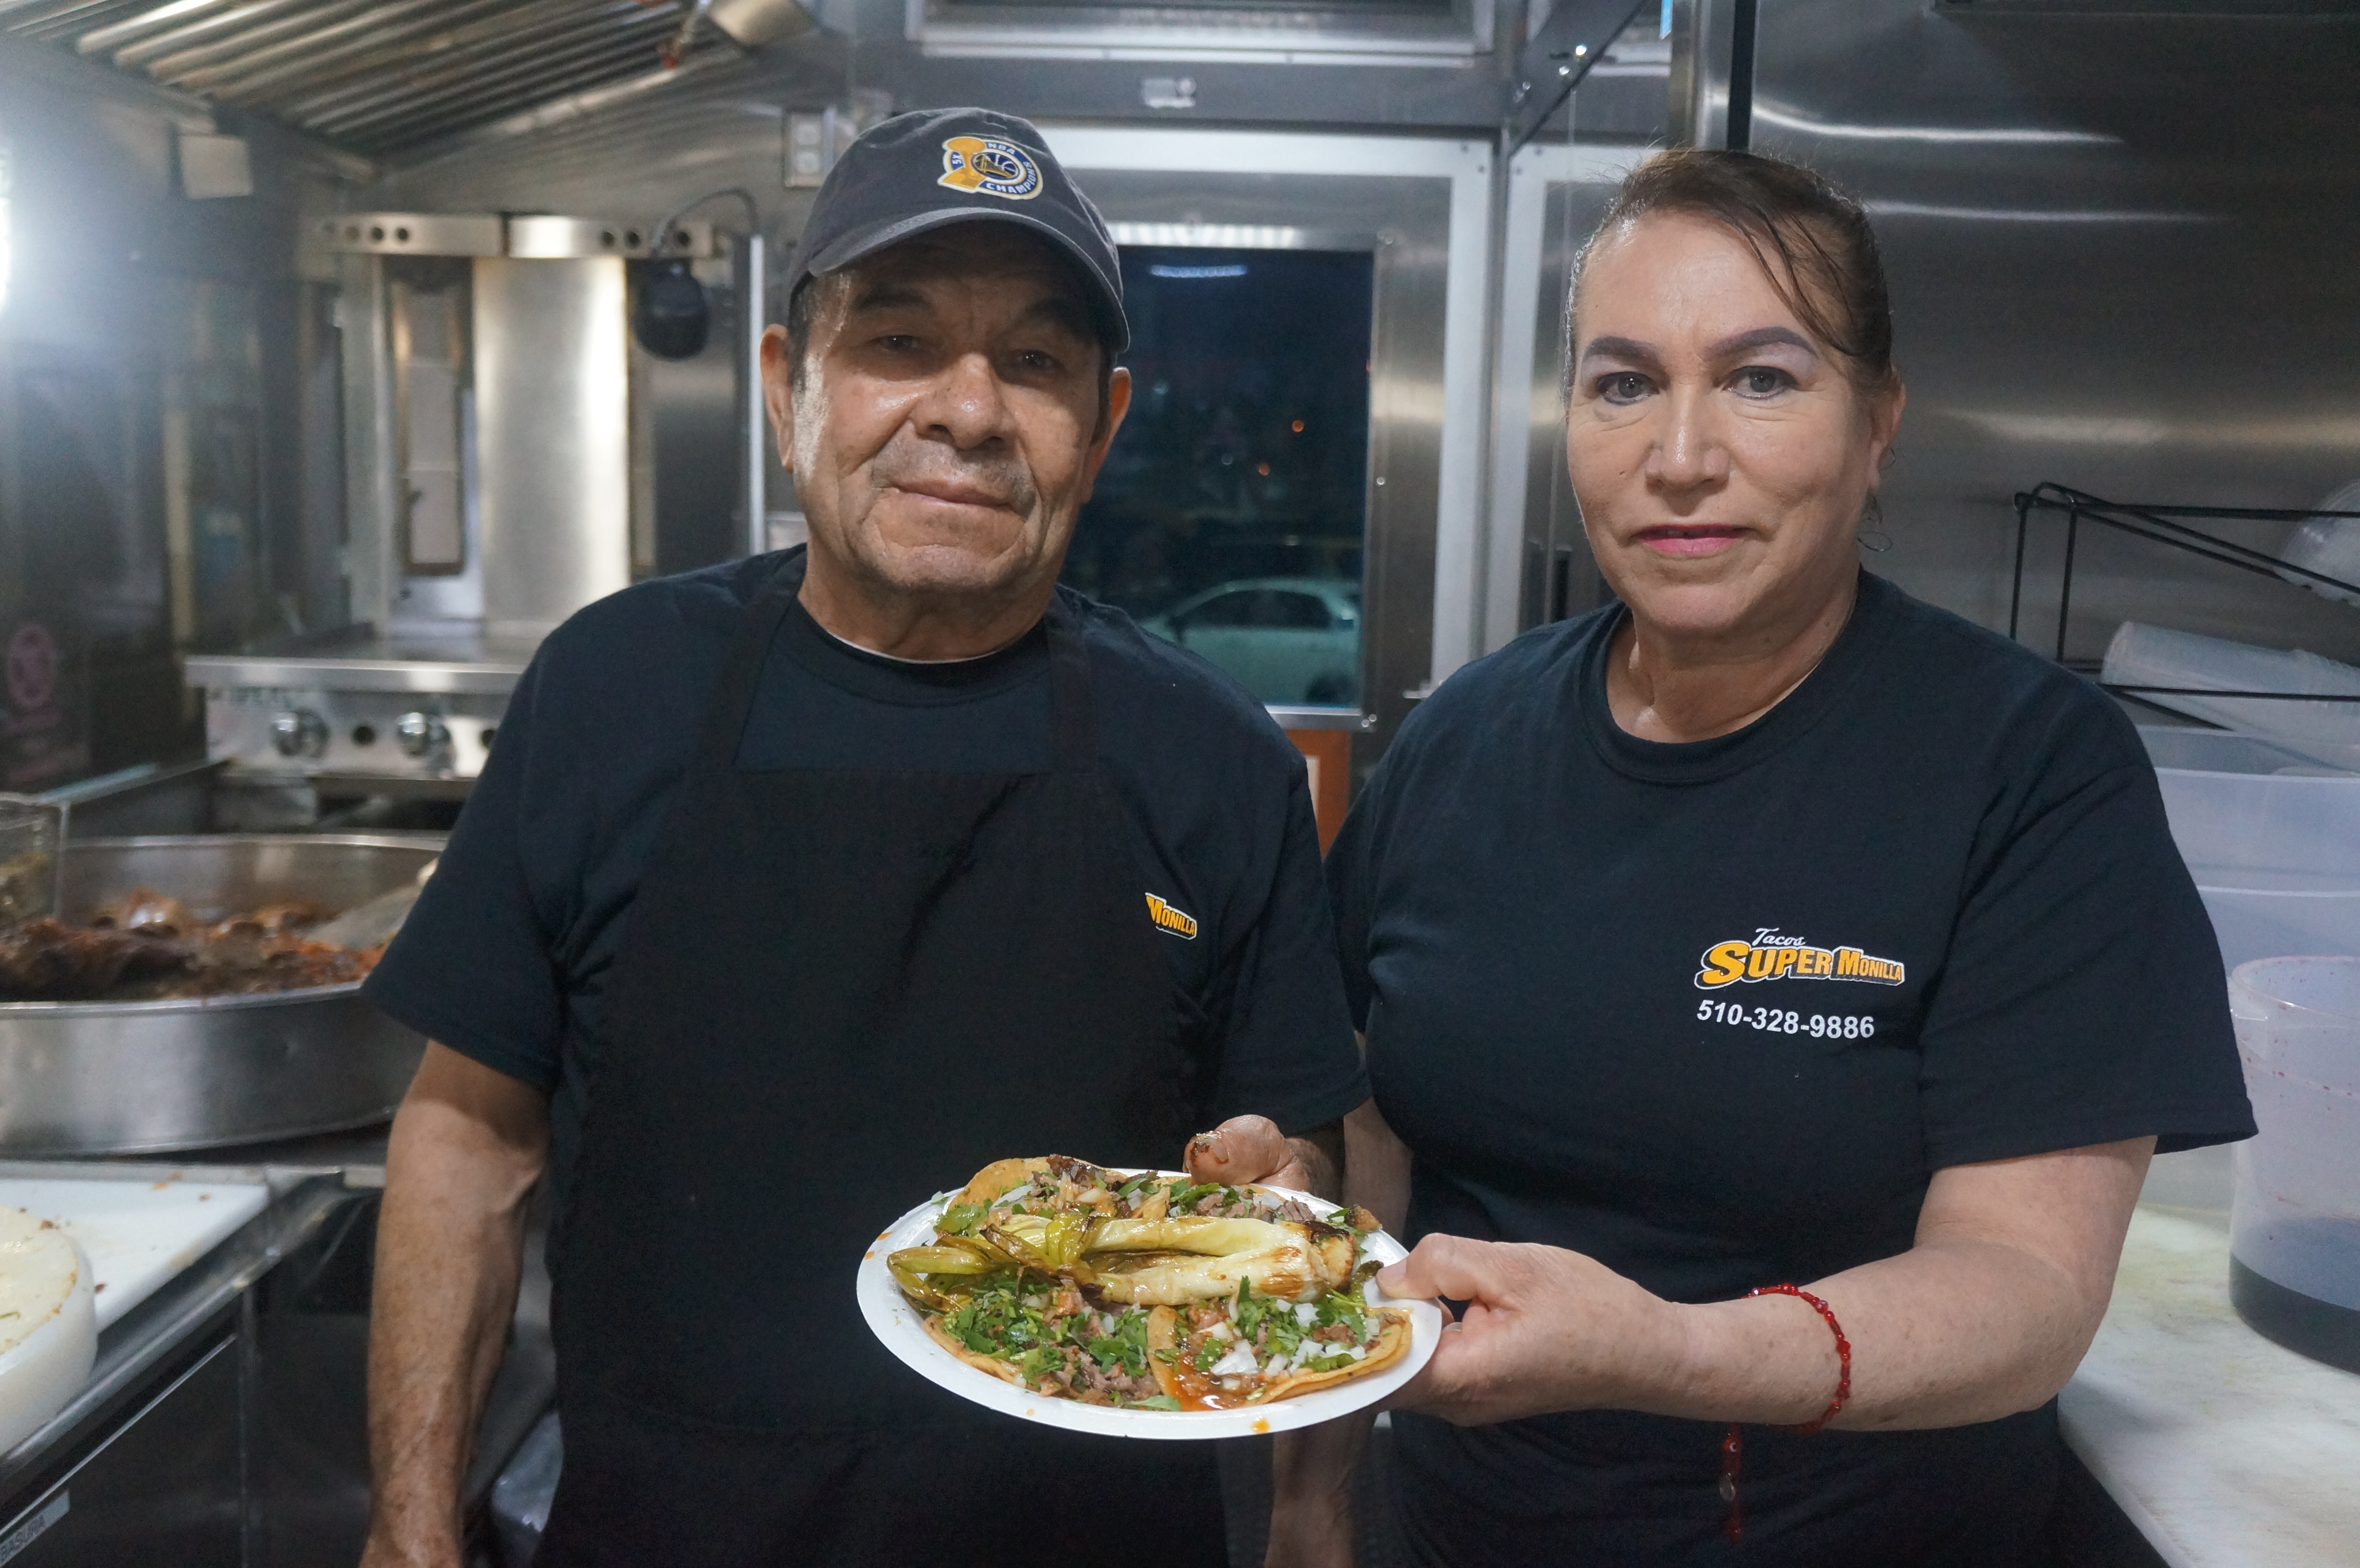 Ramon and Silvia Torres hold a plate of tacos at the Tacos Super Monilla taco truck in Alameda